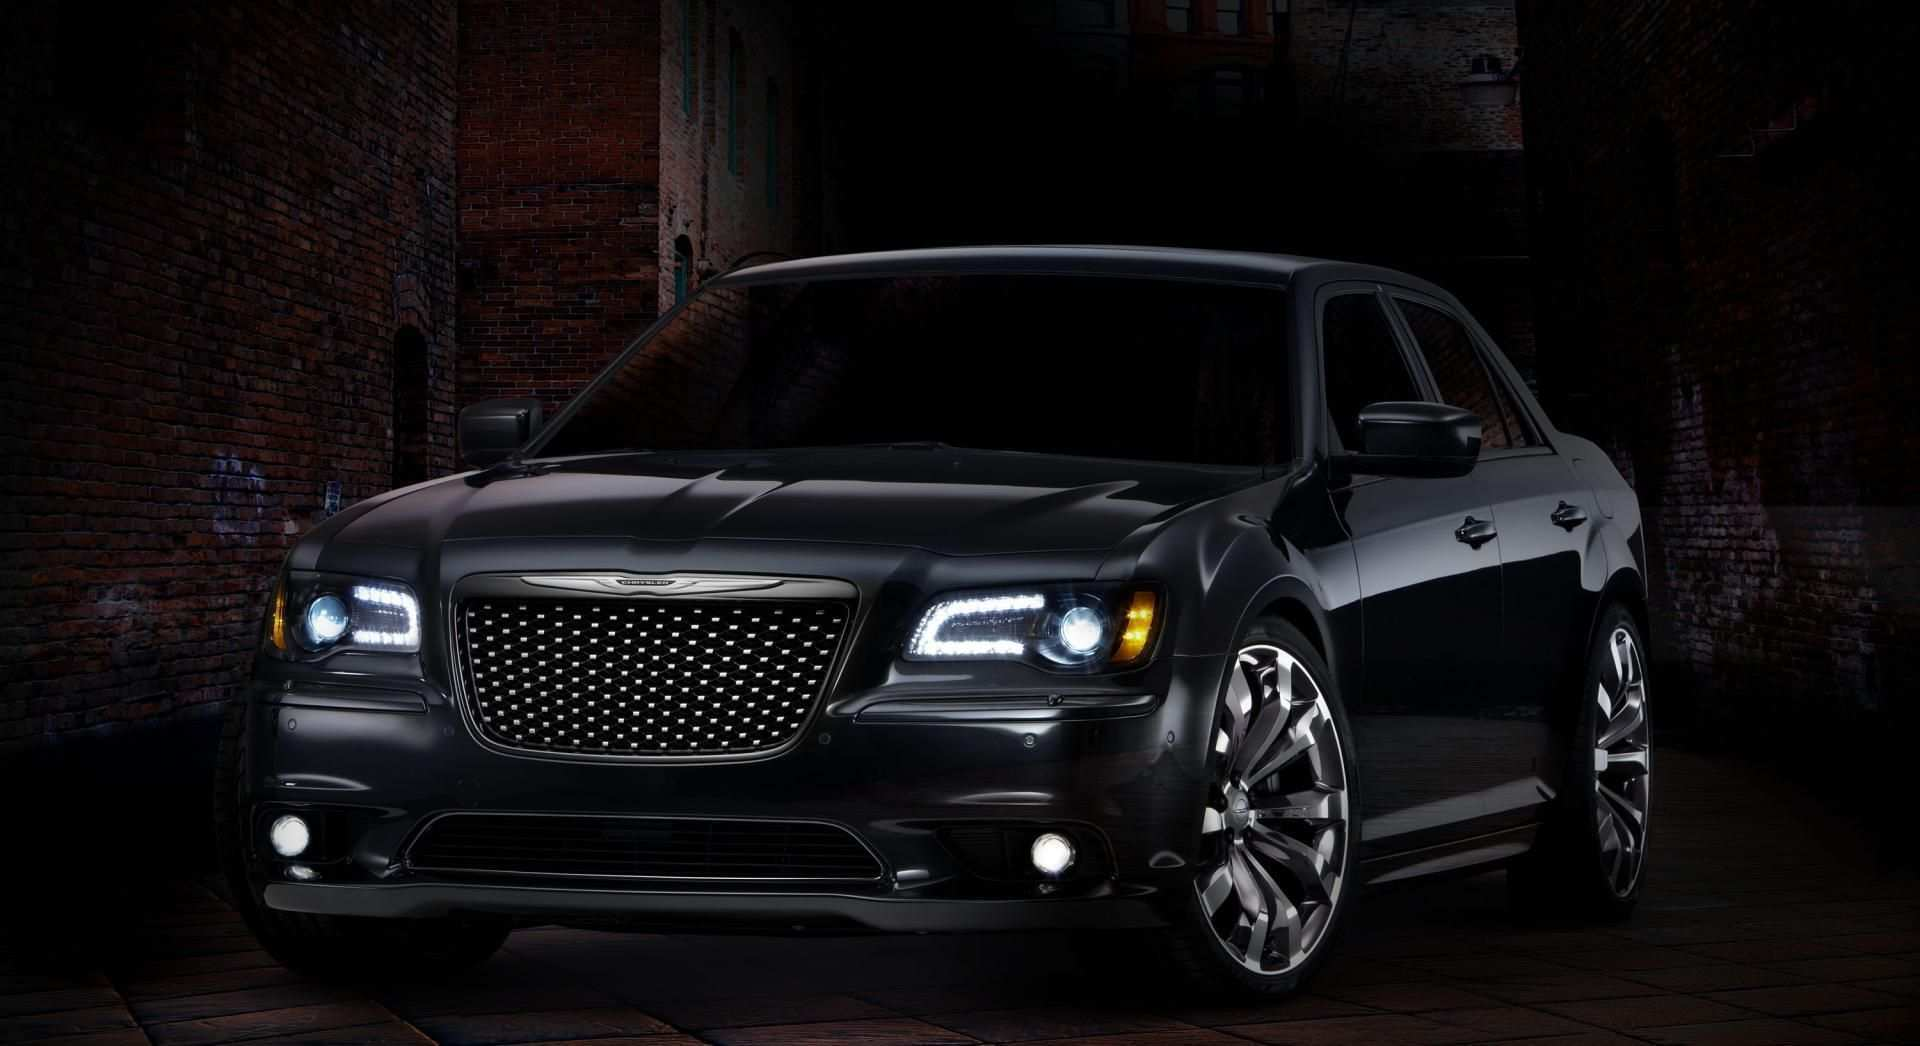 96 All New 2020 Chrysler 300 Srt 8 Spy Shoot with 2020 Chrysler 300 Srt 8